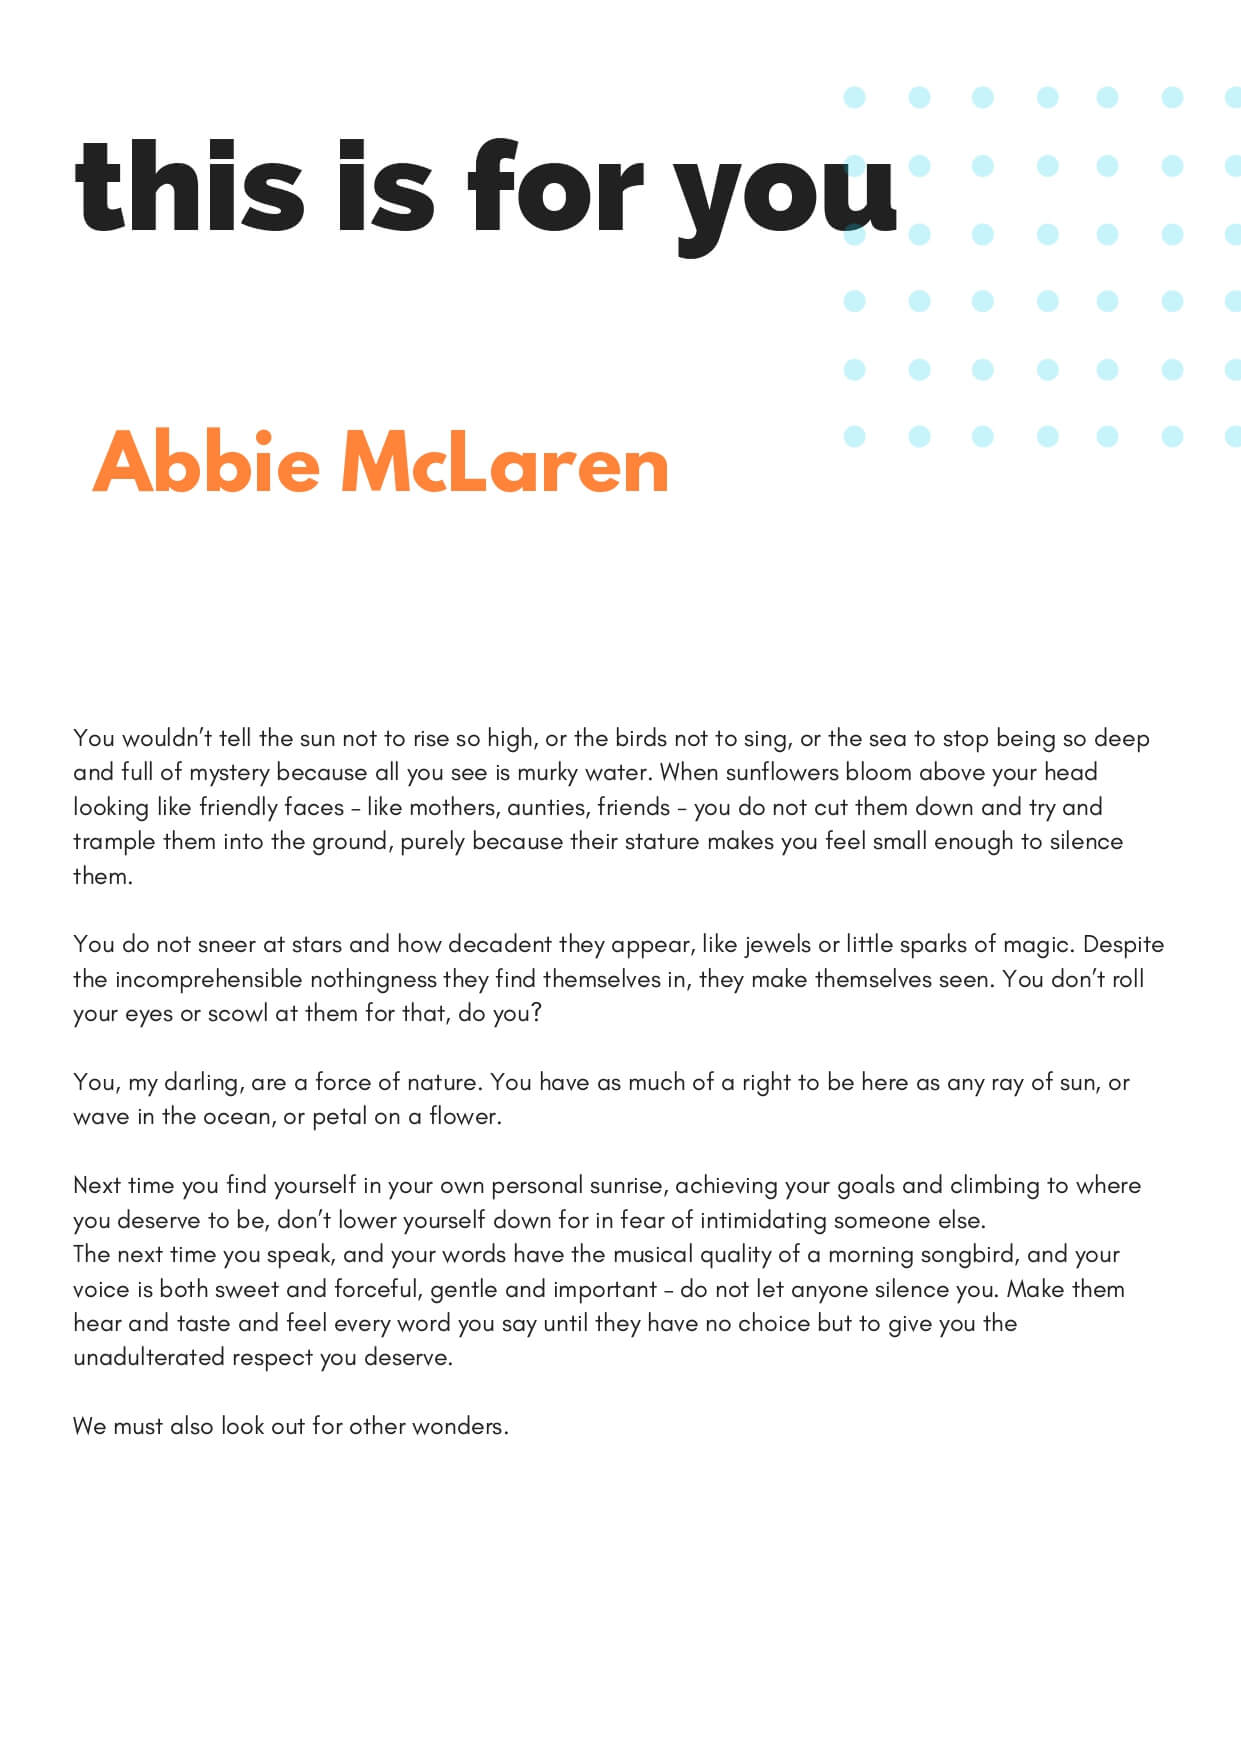 How to Change the World zine - This is for you by Abbie McLaren (page 1)